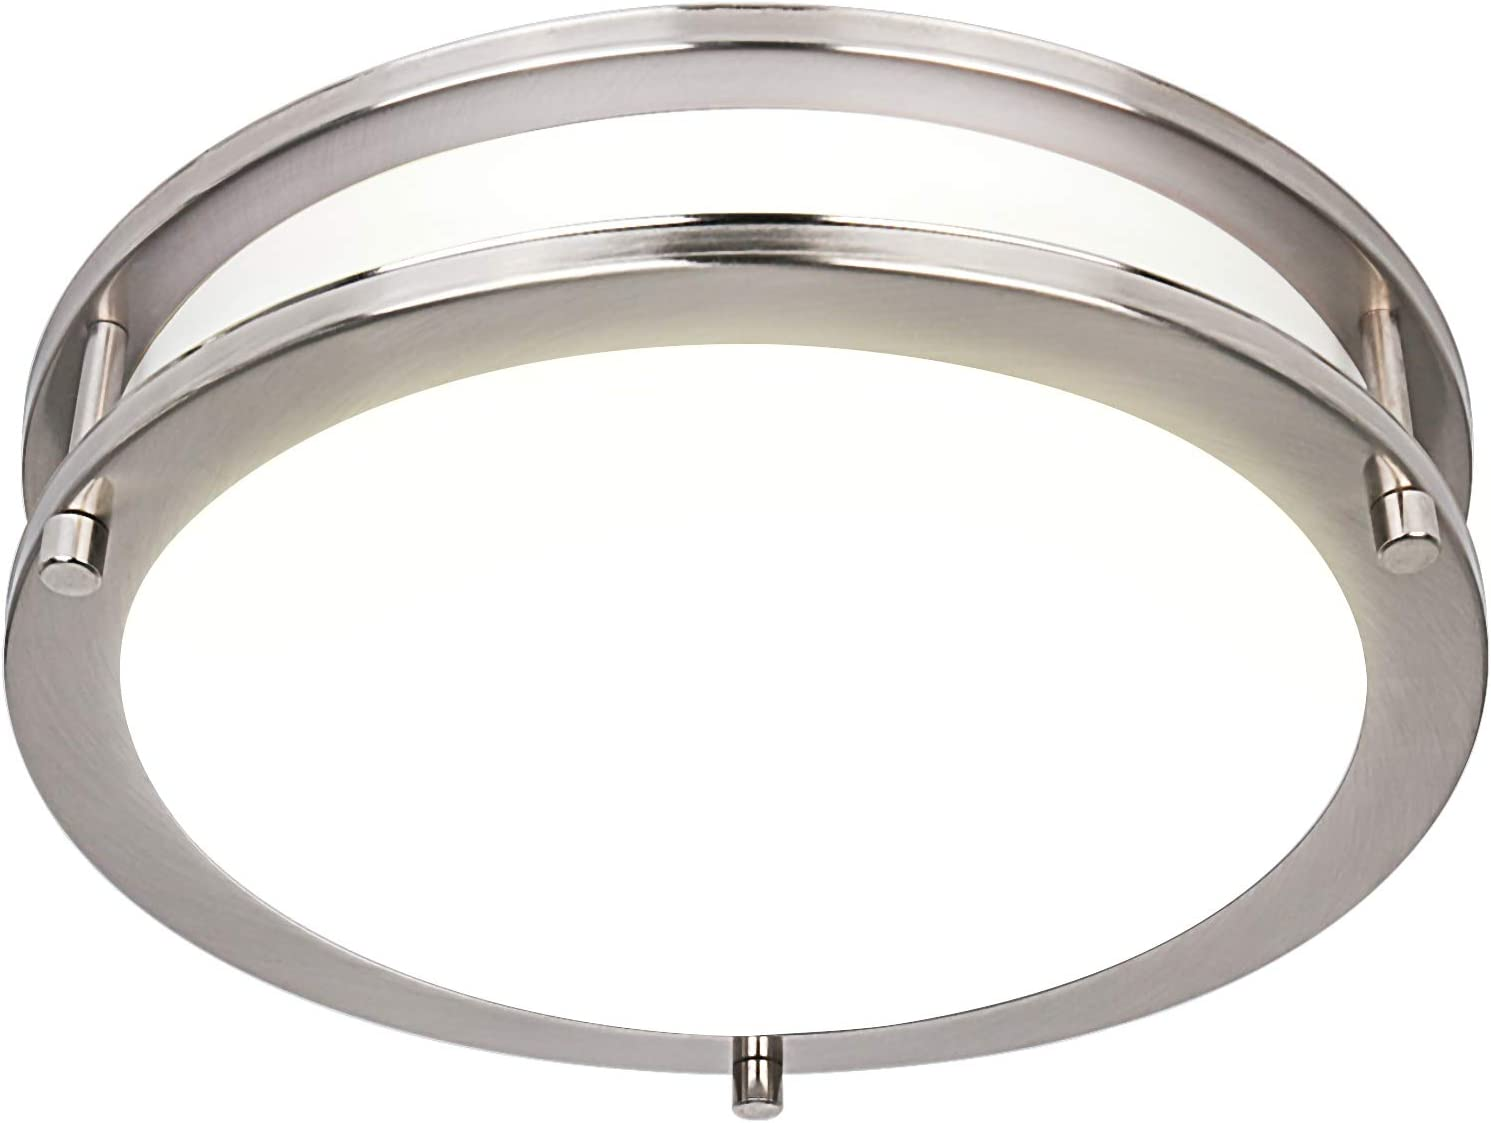 Hykolity 18 Inch LED Ceiling Light, 30W [240W Equivalent] 1900lm 4000K BN Finish Dimmable Saturn Flush Mount Ceiling Light, ETL Listed for Kitchen, Bedroom, Restroom, Walk in Closet